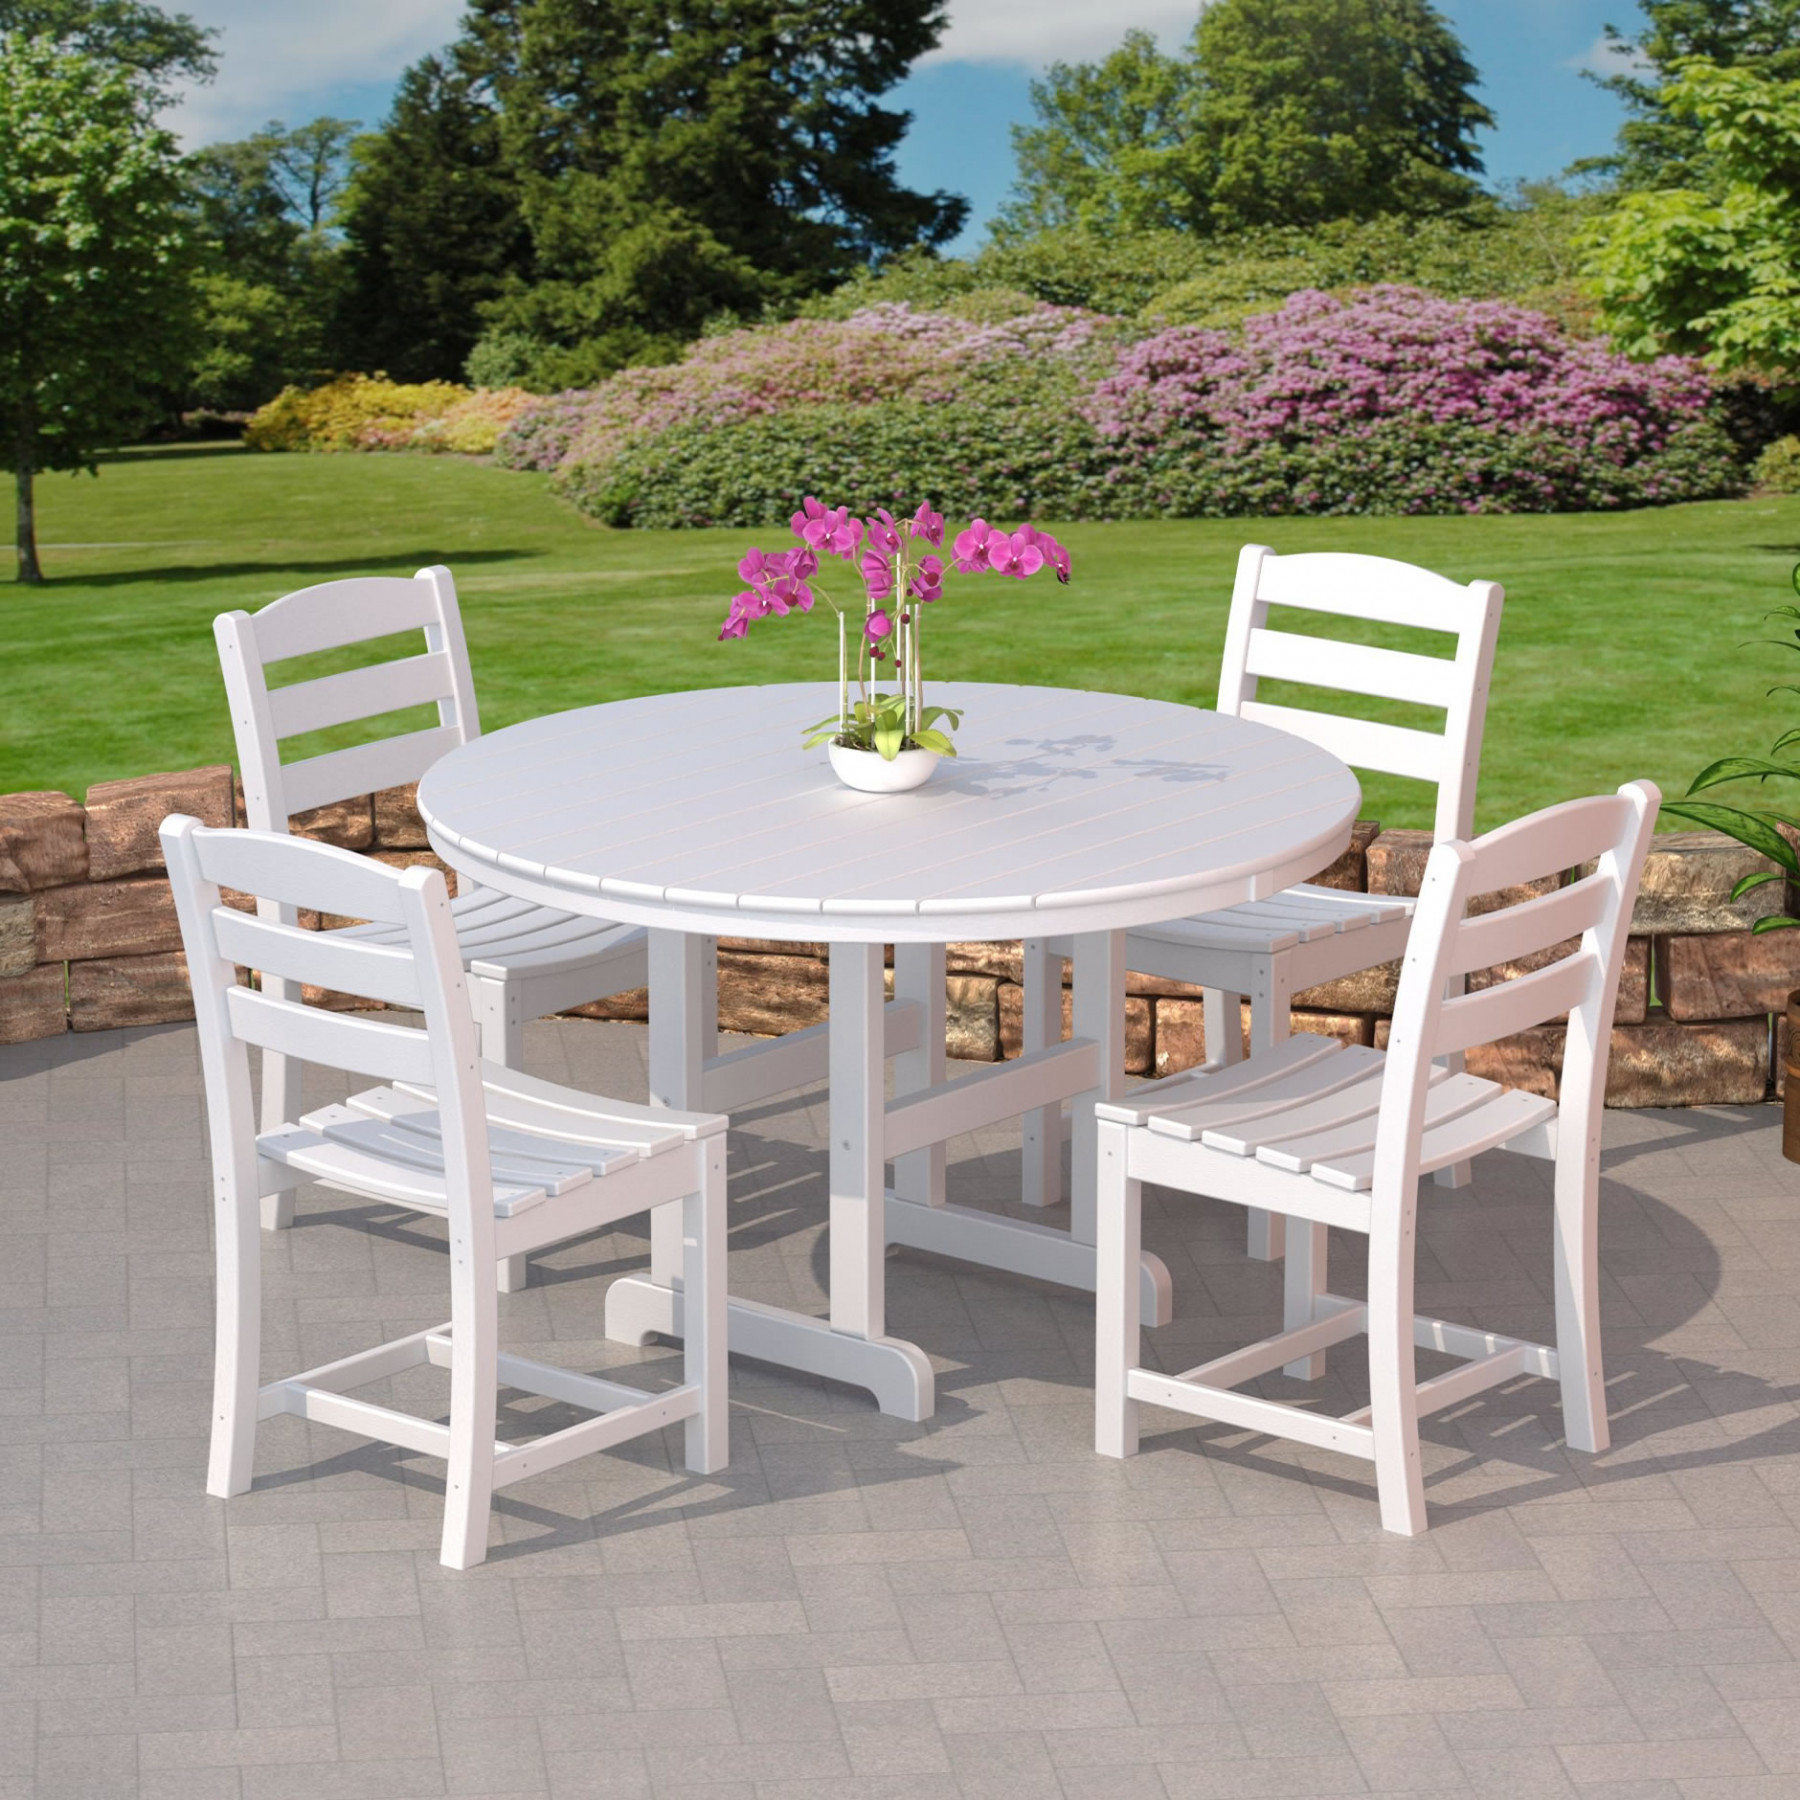 Polywood 174 La Casa Cafe Outdoor Dining Set Dining Sets